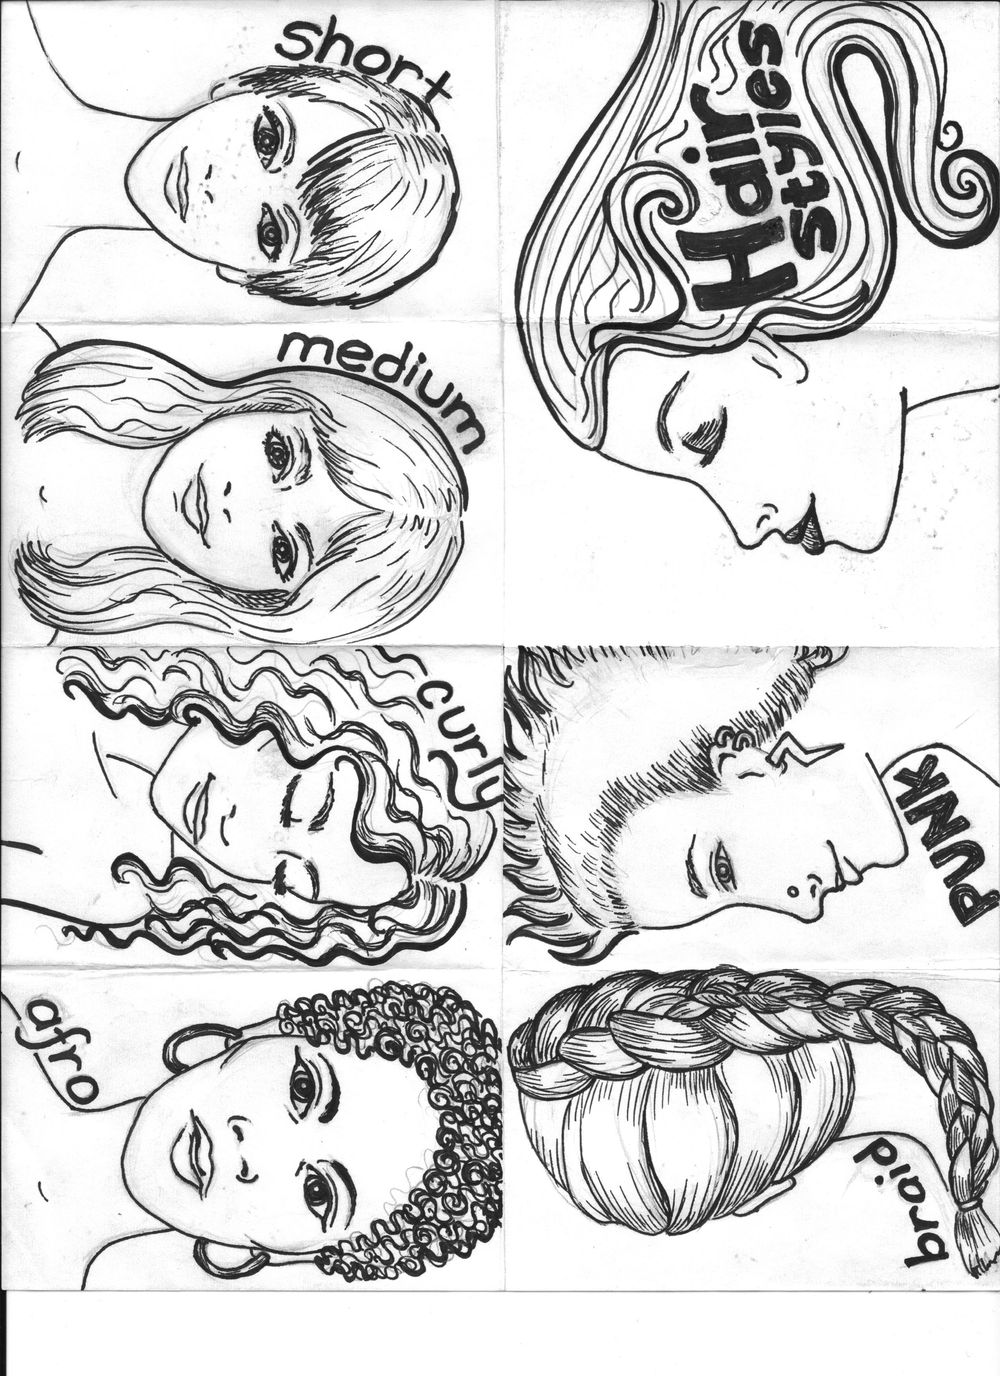 Hair Styles Zine - image 4 - student project